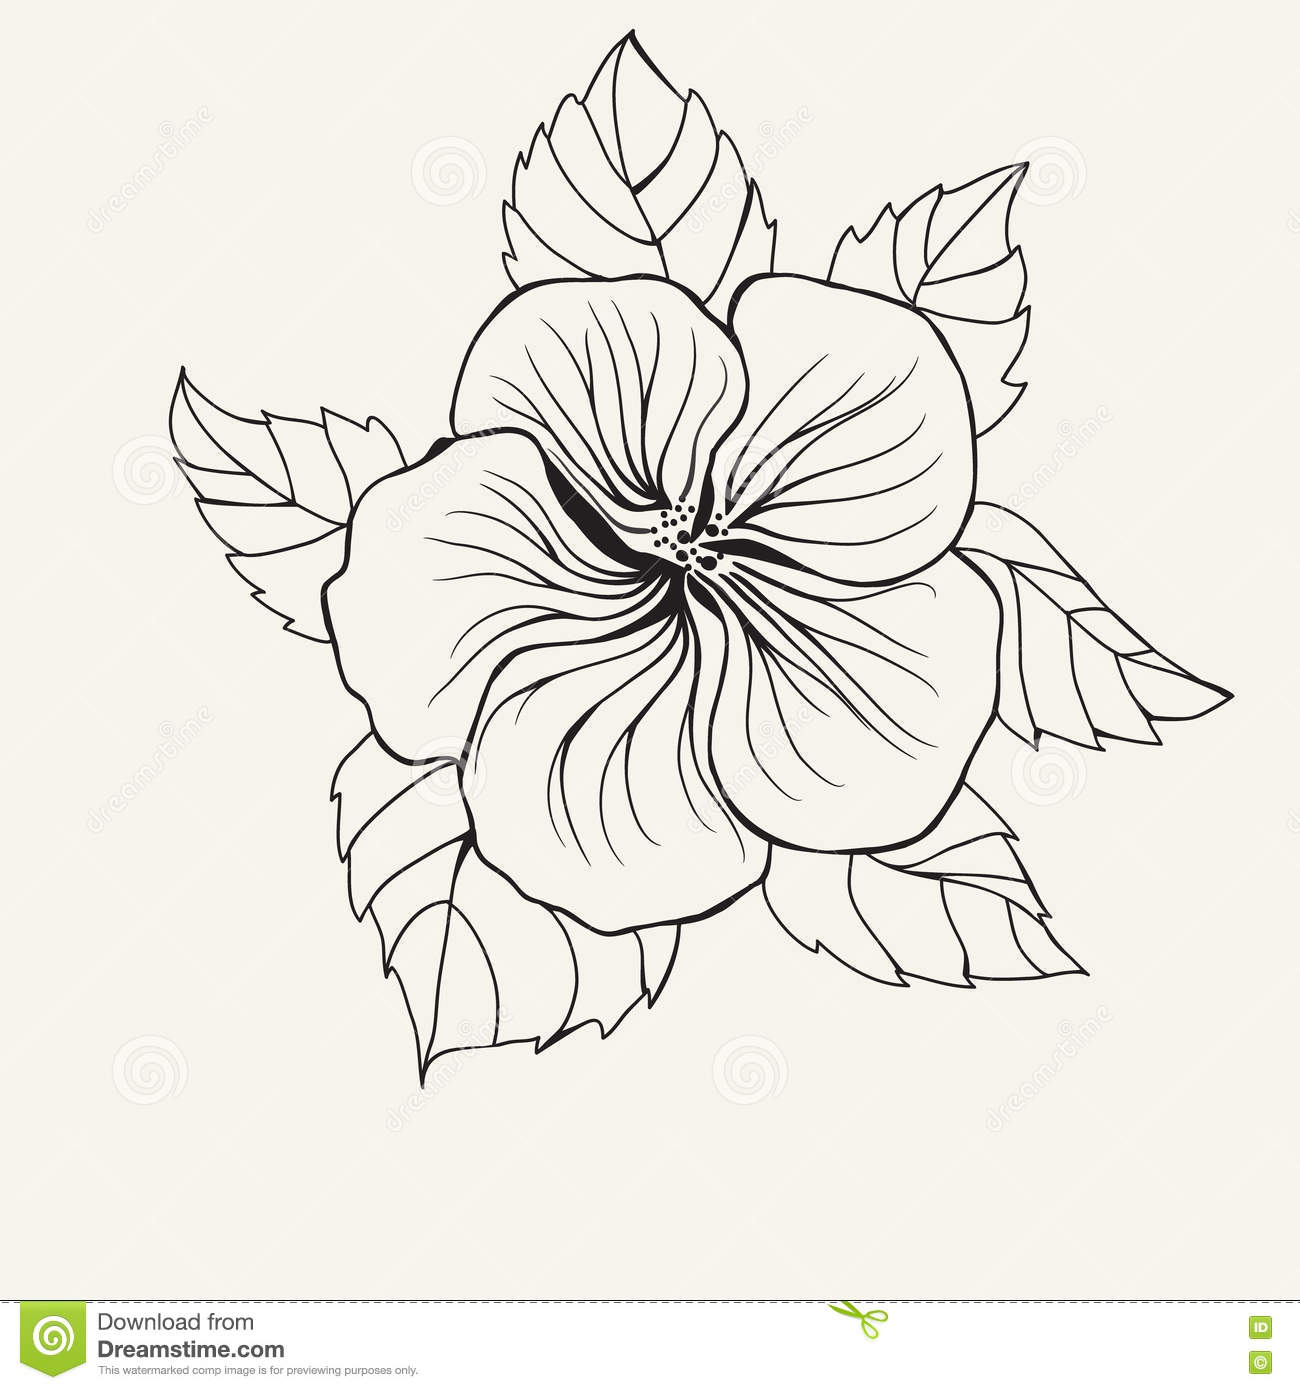 Hawaii Hibiscus Flower, Leaf For Coloring Book Page For Adult Stock ...